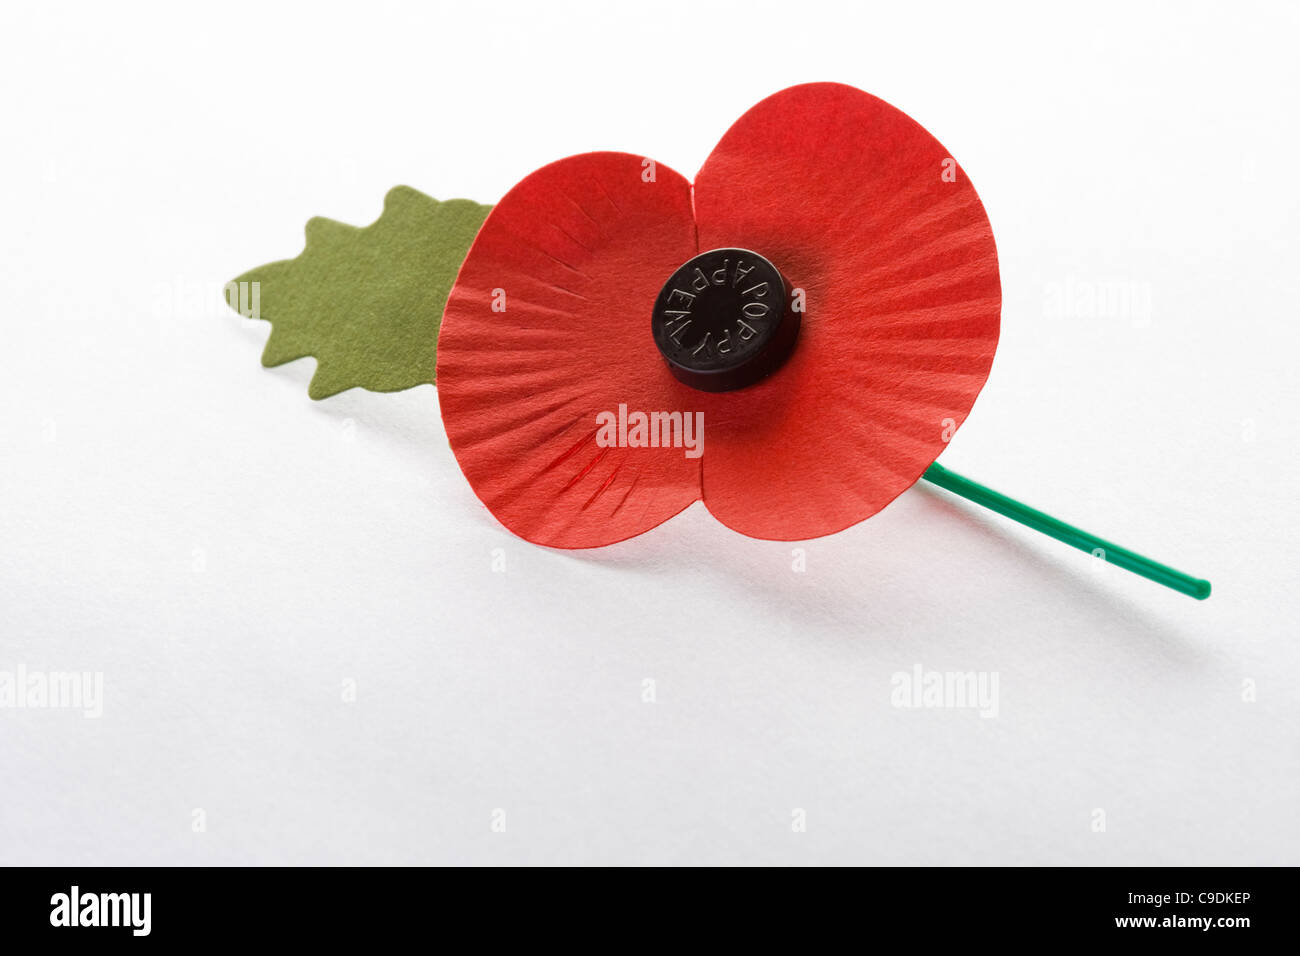 Royal British Legion poppy for November Poppy Appeal. - Stock Image